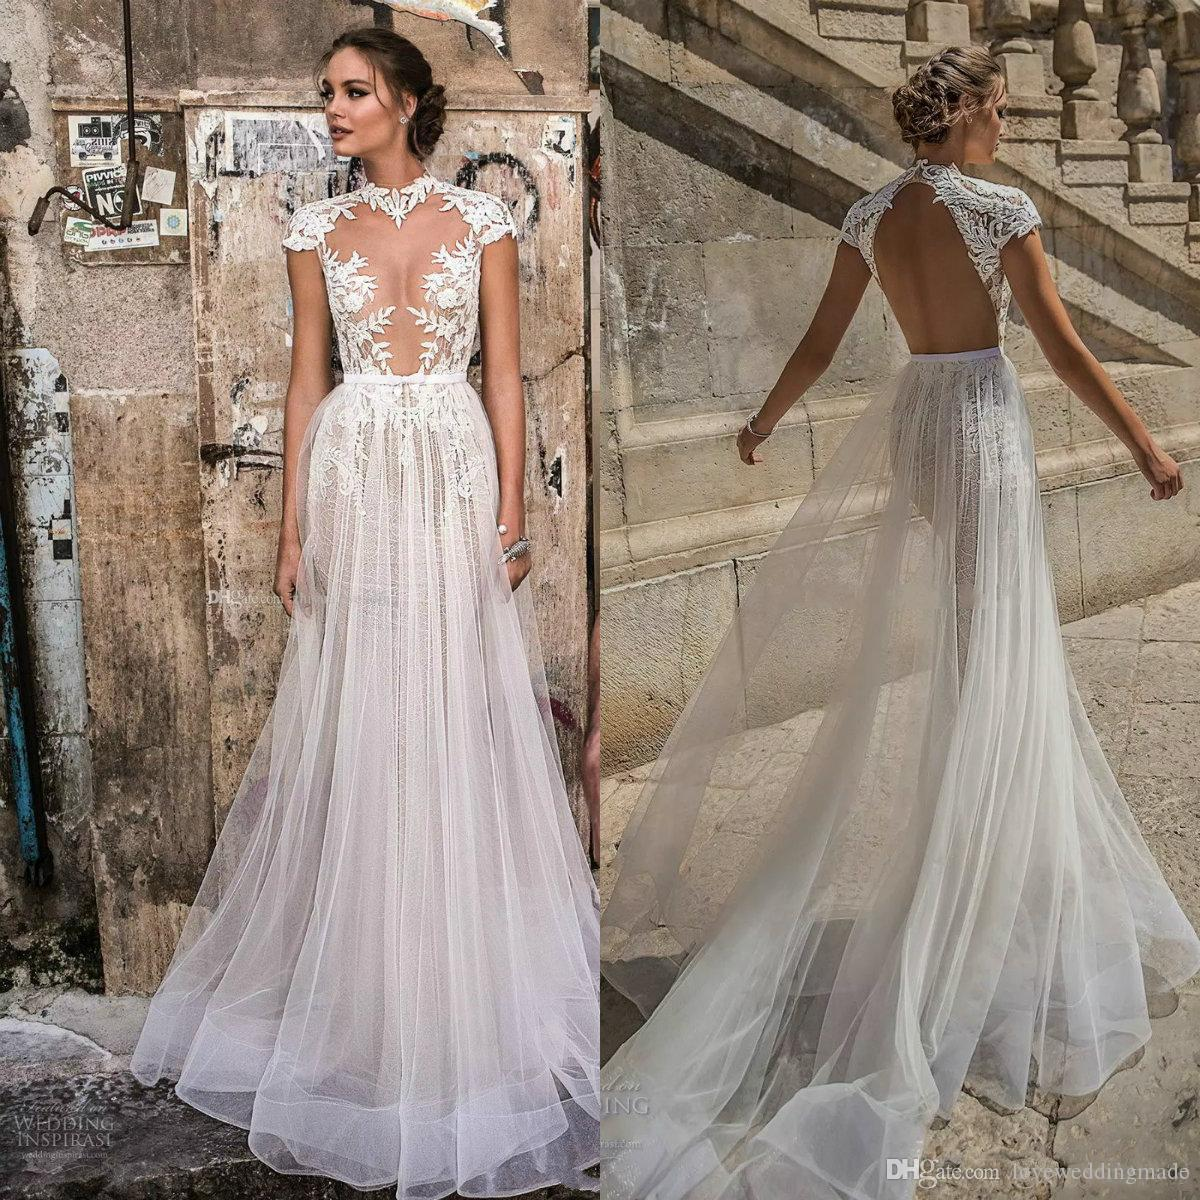 Discount 2018 Berta Modern Lace Tulle Beach Country Wedding Gowns See Through Cap Sleeves High Neck Open Back Bridal Gown Dress Es A Line: See Through Country Wedding Dresses At Reisefeber.org